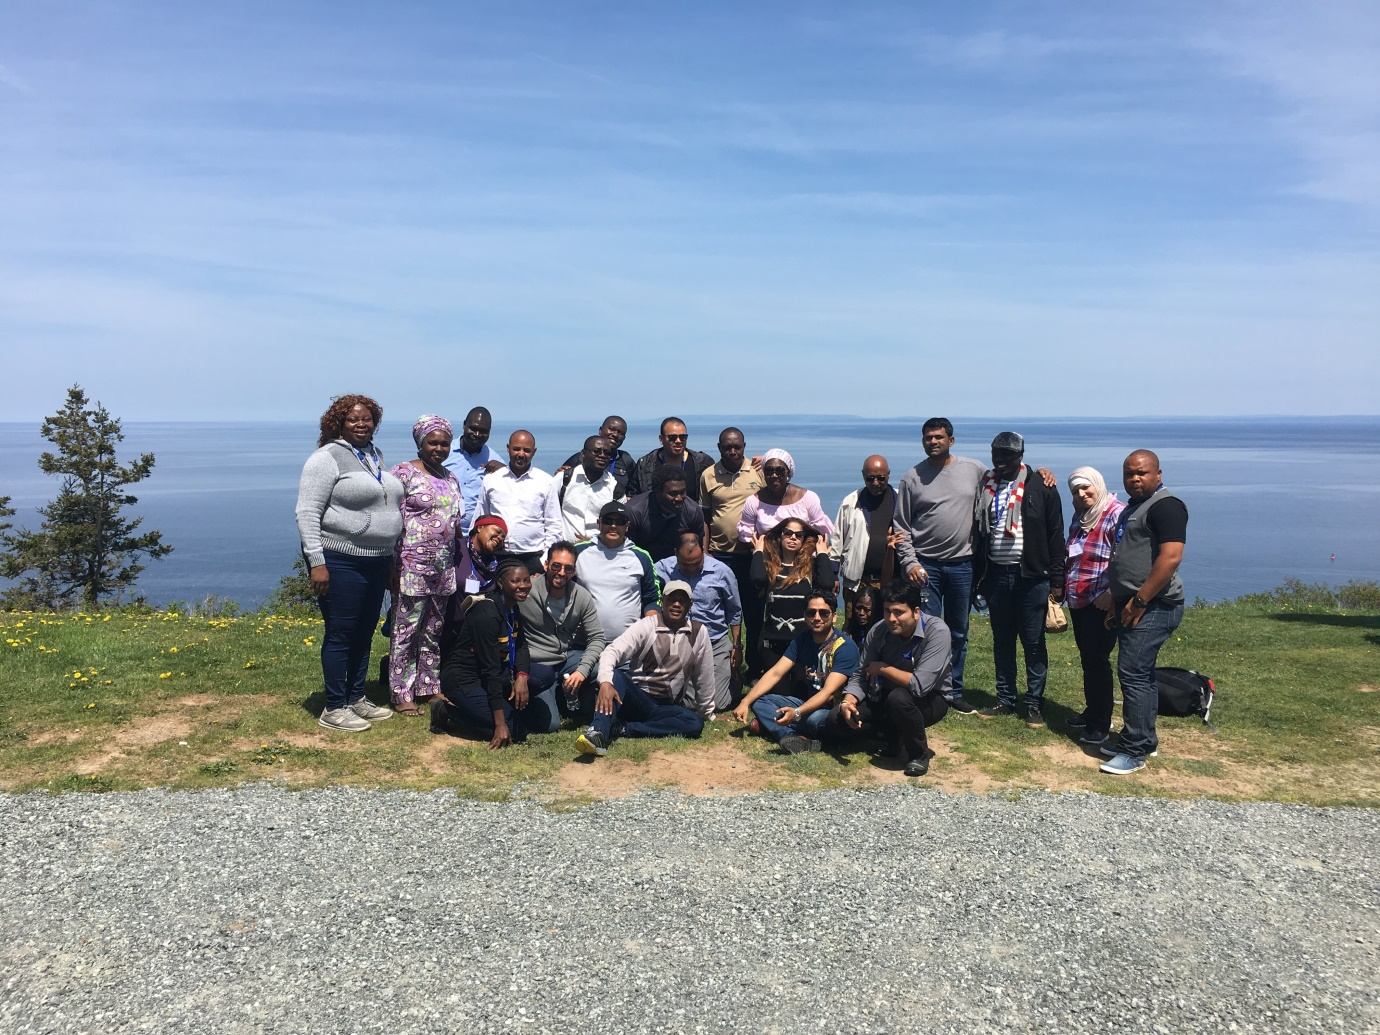 Participants on a field trip to the Aflantic Ocean at the end of Canada.